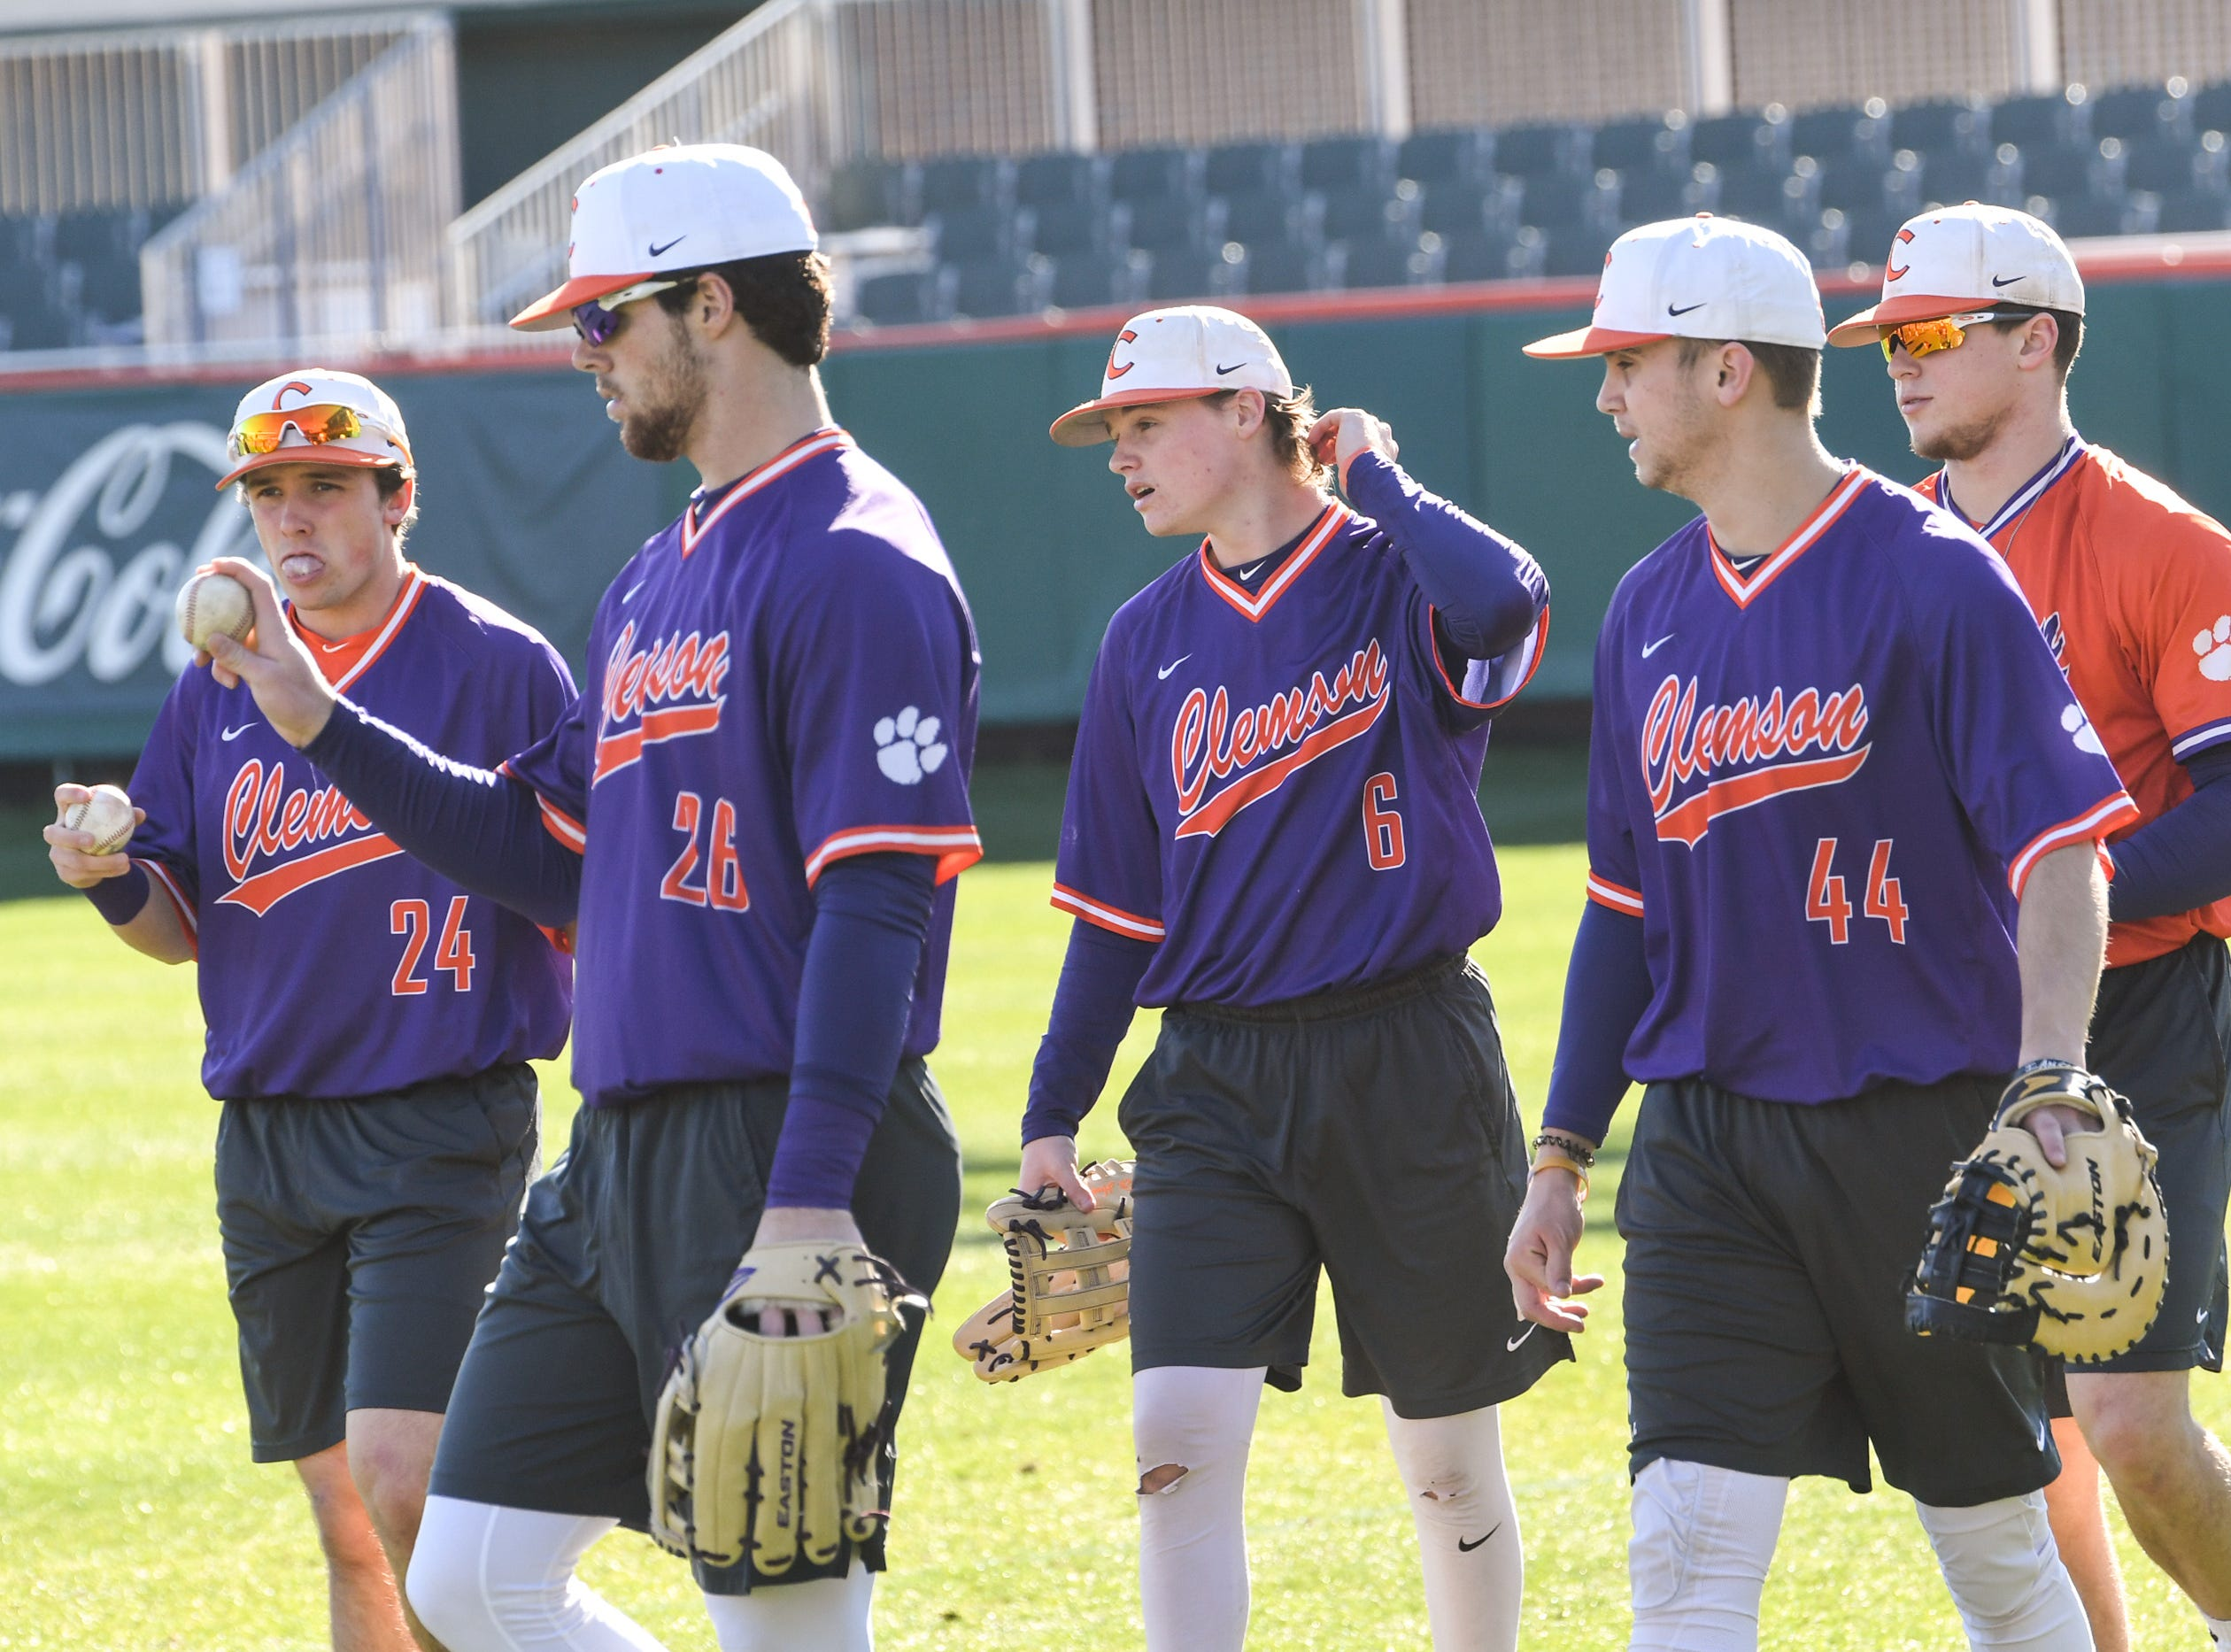 Clemson freshmen Mac Starbuck (24), left, Matt Cooper (26), Elijah Henderson (6), and Bryar Hawkins (44) warm up together during practice at Doug Kingsmore Stadium in Clemson Friday.